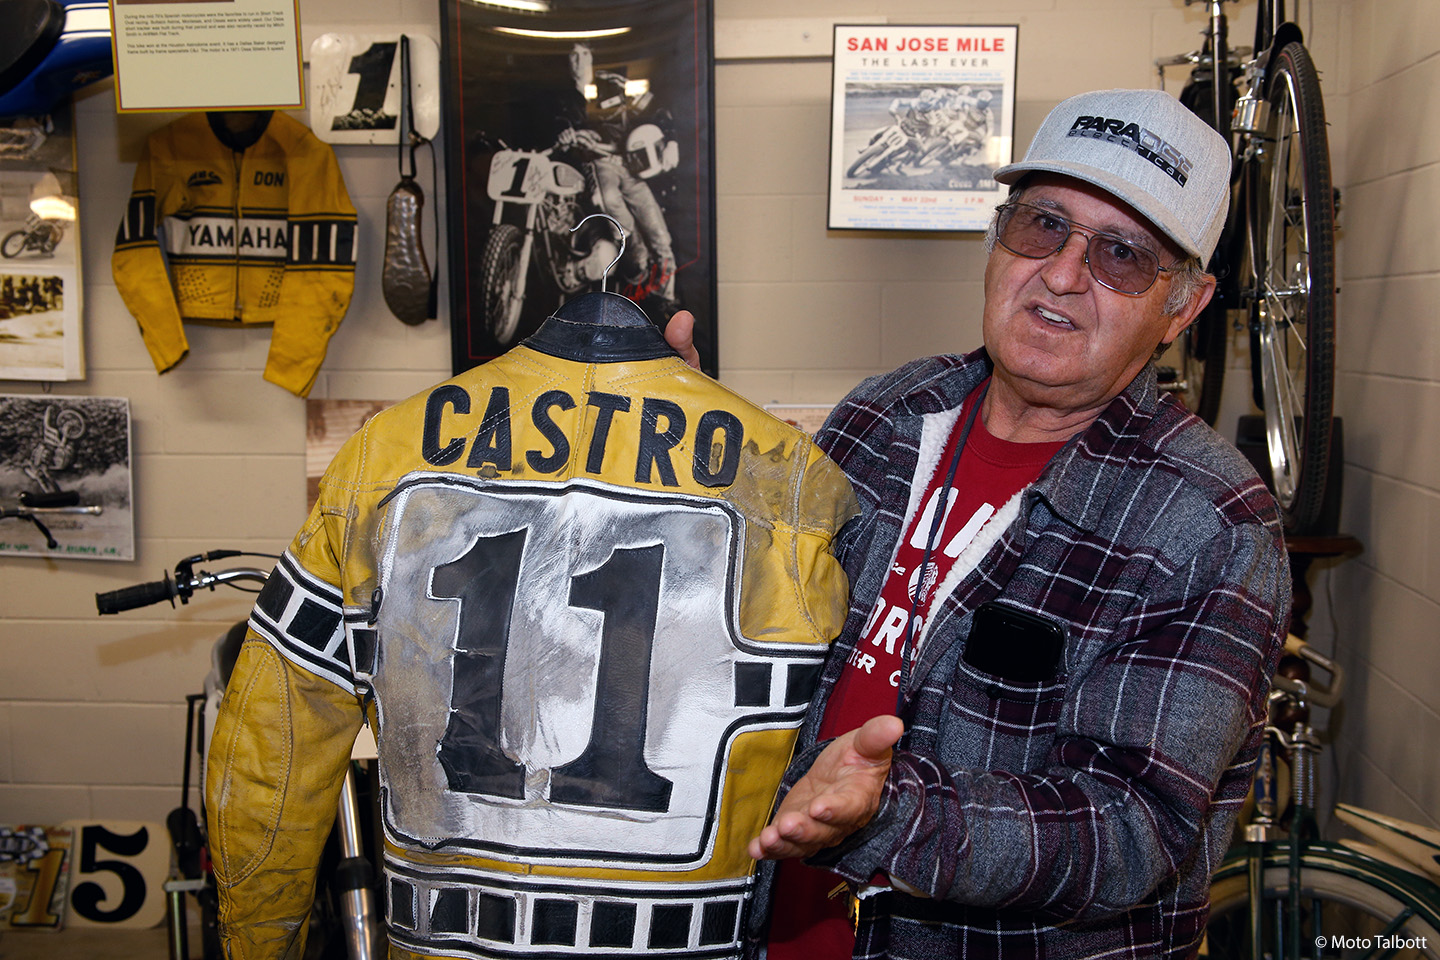 Hall of Famer Don Castro with some of his racing memorabilia, which is all part of a special display at Moto Talbott, along with his motorcycles.